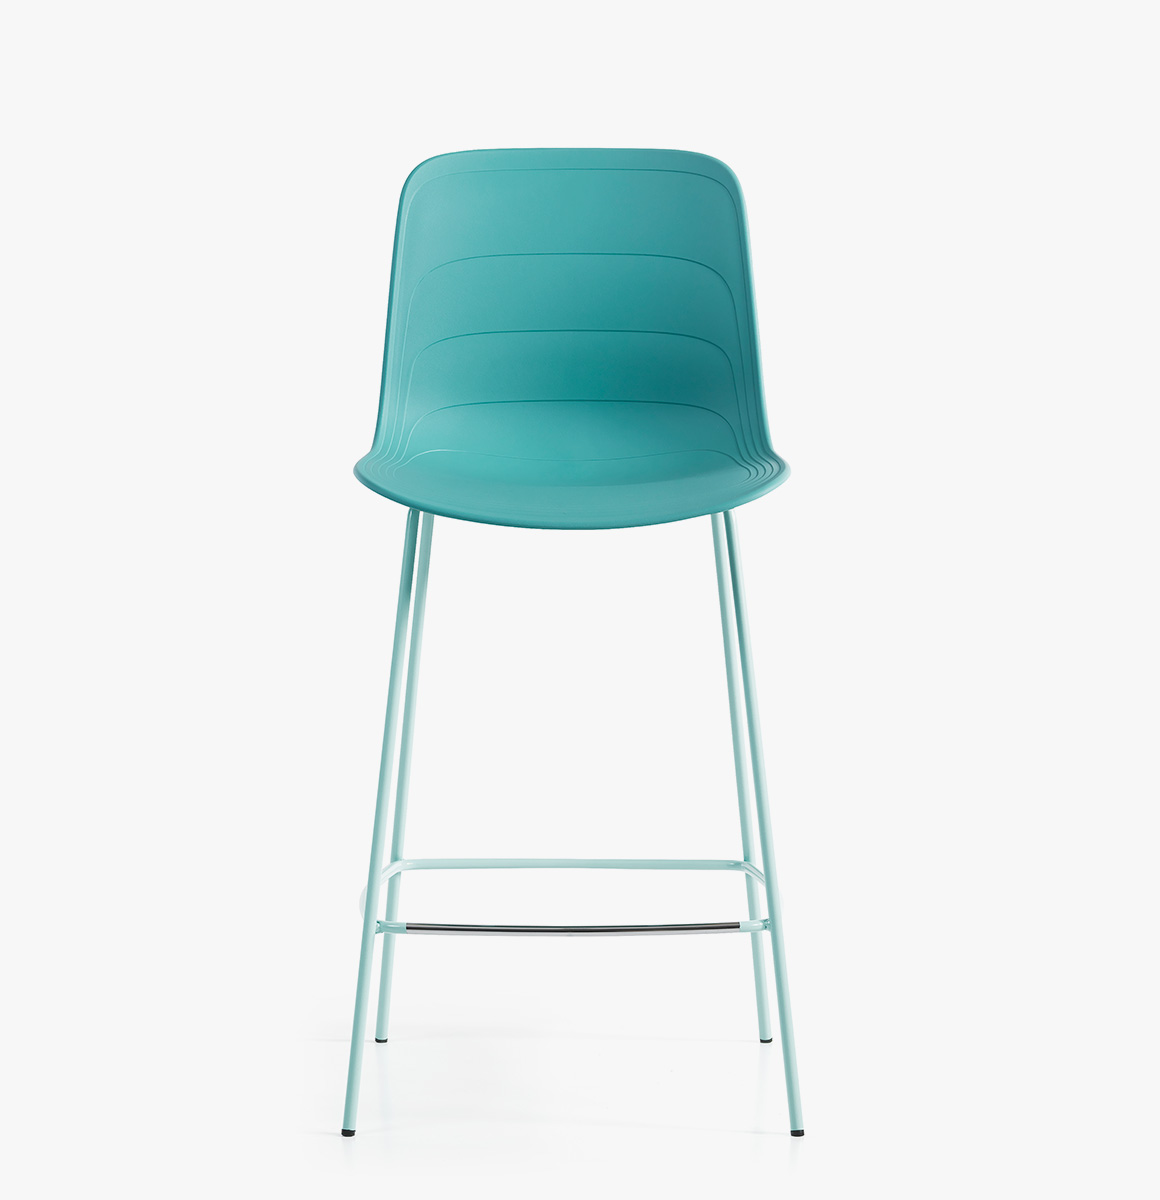 Grade counter stool 4.1